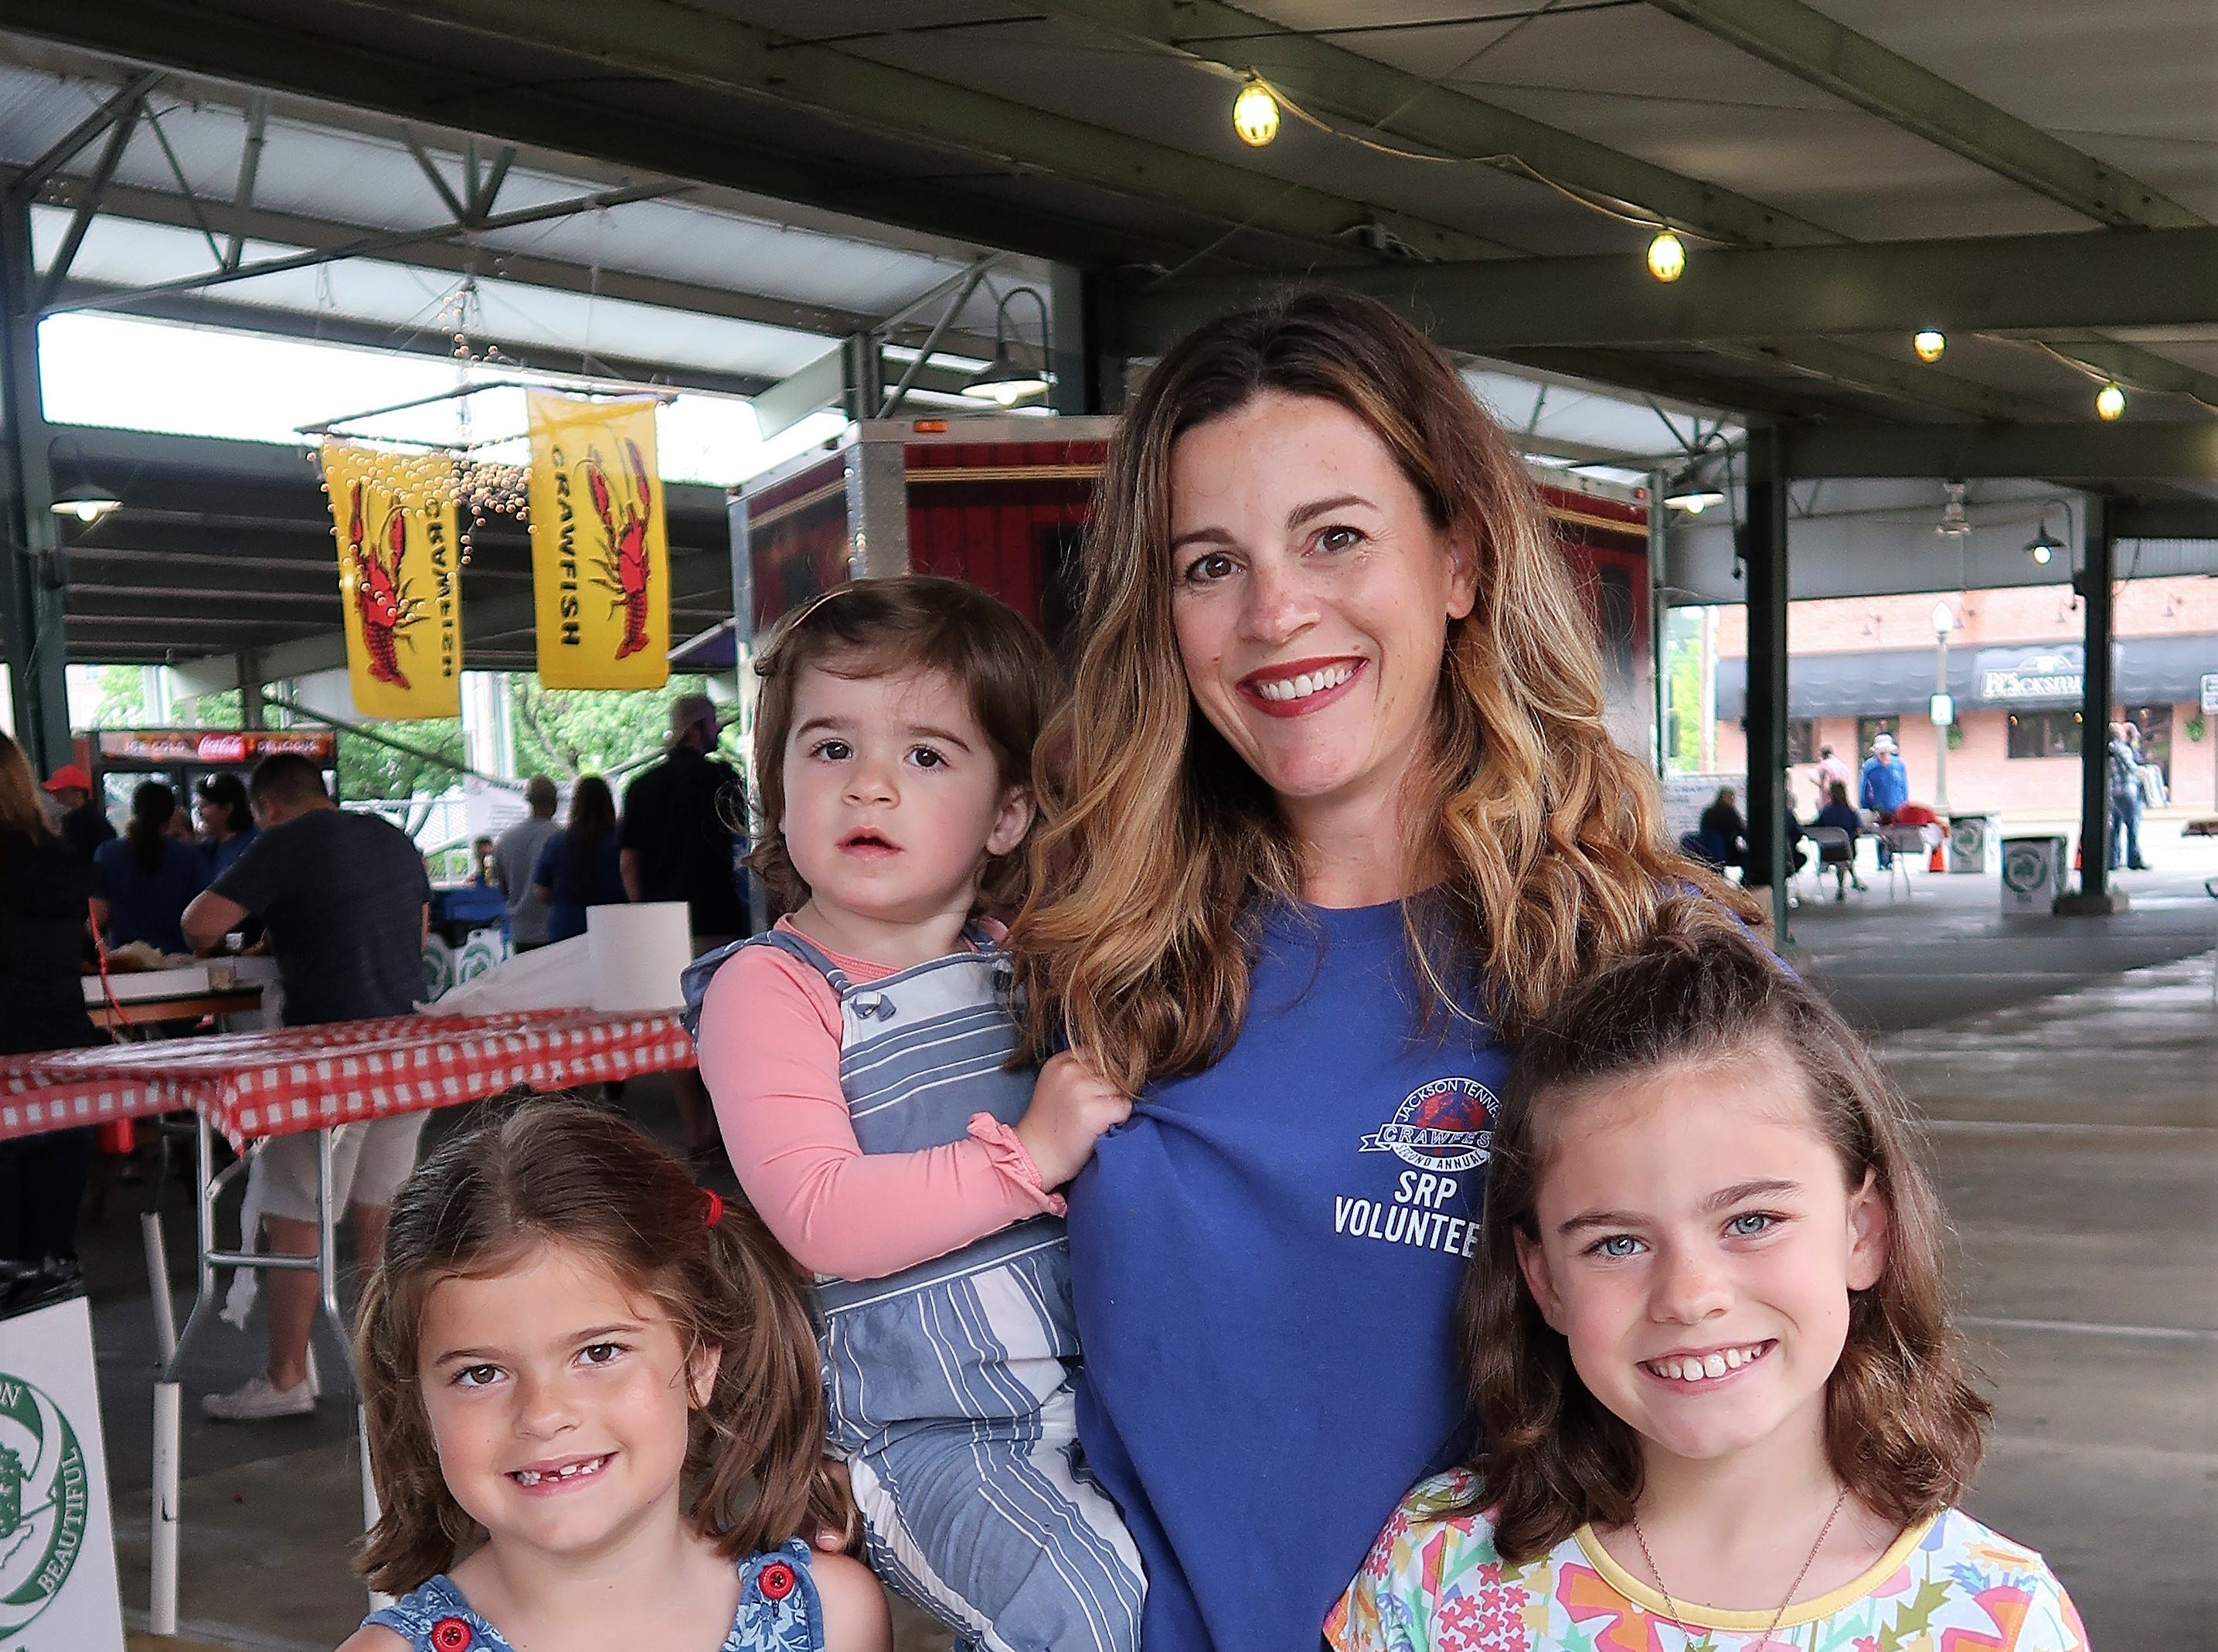 Milly Smith, Taylor May Smith, Sarah Smith and baby Stella Smith pose with a crawfish at the Second Annual Crawfest fundraiser for the Scarlet Rope Project at the West Tennessee Farmer's Market in Jackson on May 4, 2019.